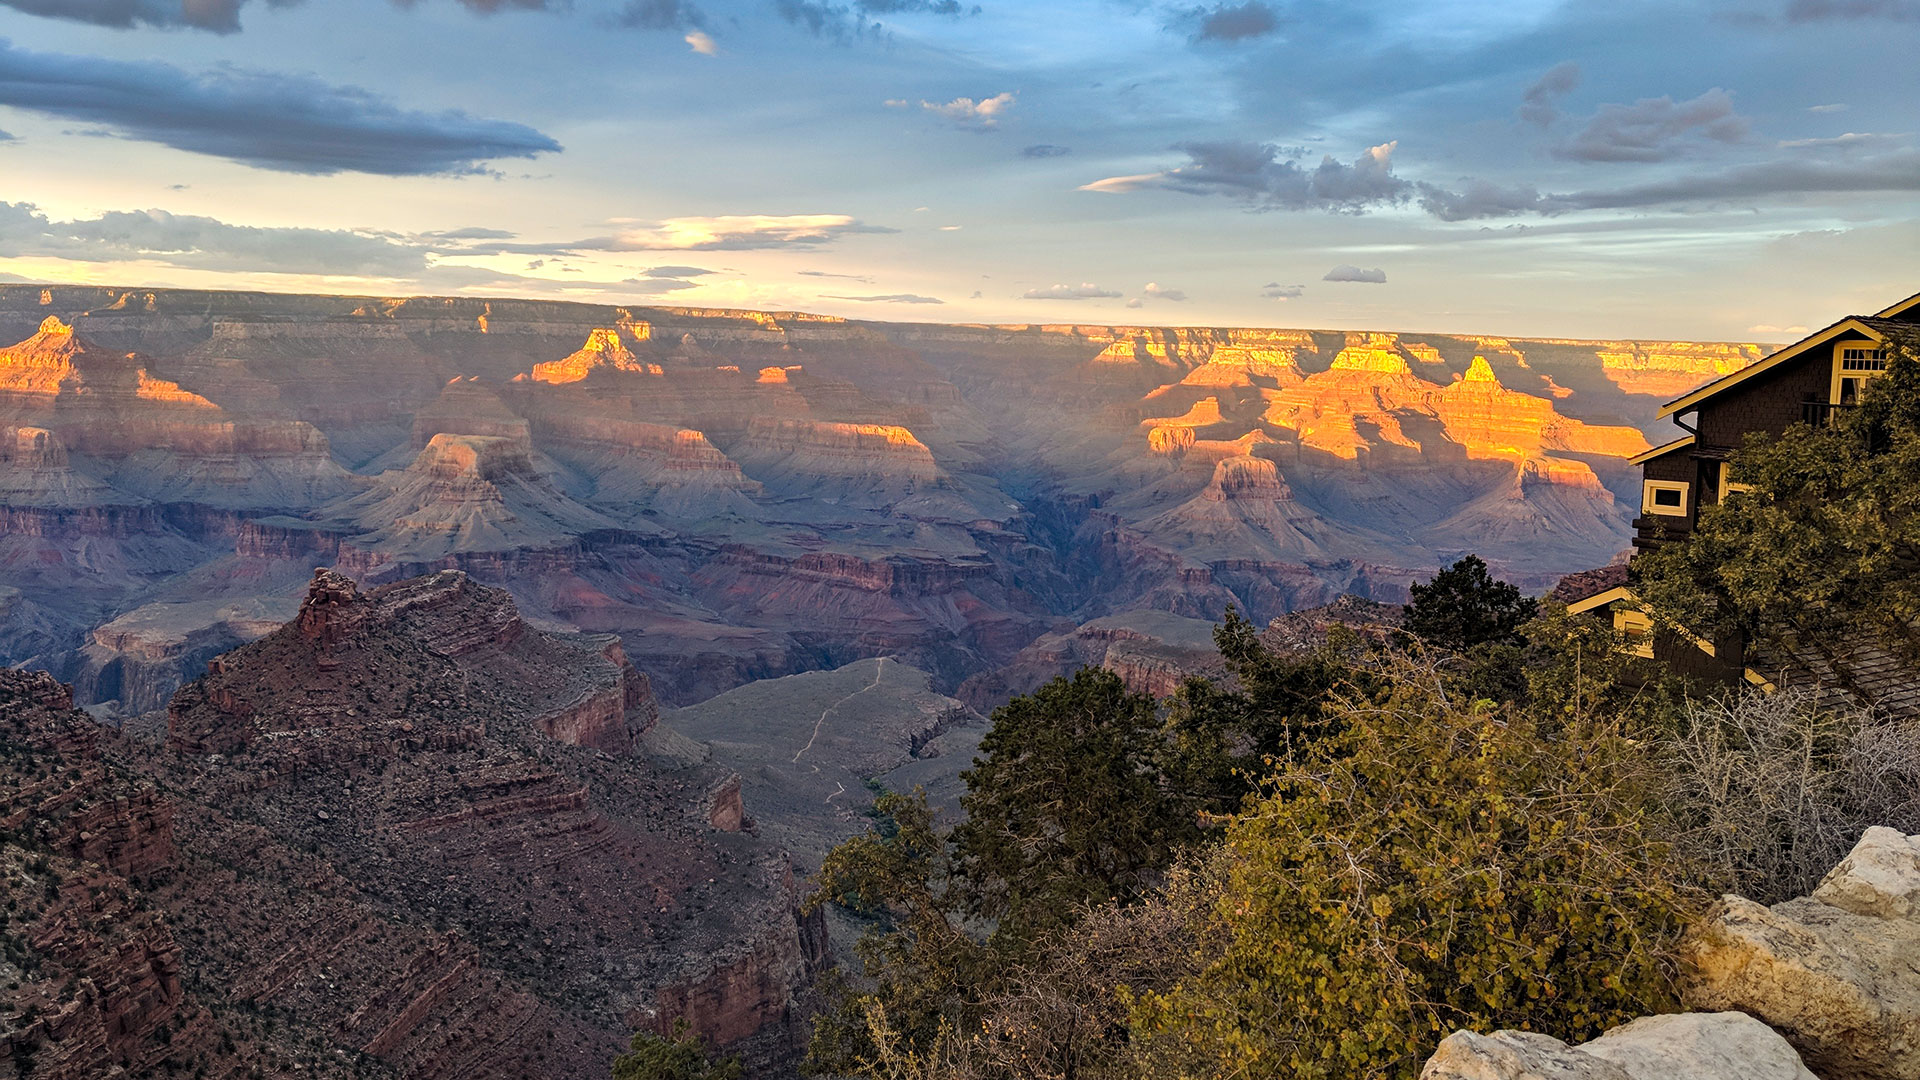 A view from the South Rim of the Grand Canyon, next to the Kolb Studio.